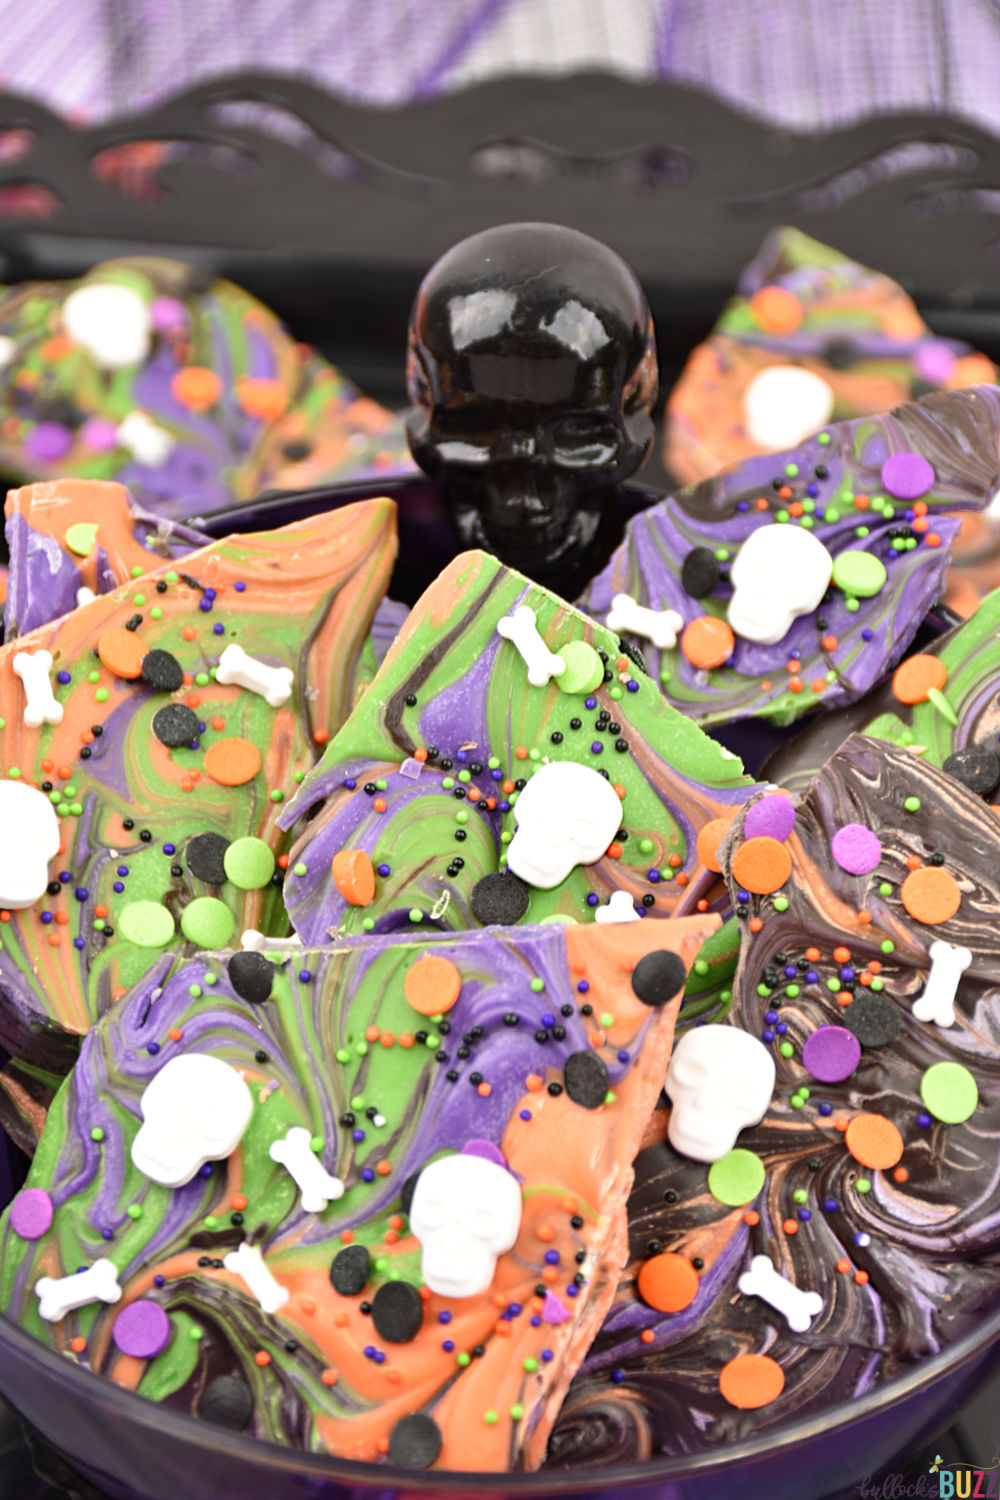 Swirled Halloween Candy Bark in bowl. This easy, no-bake Halloween Candy Bark is a scream! Get the recipe on the Bullock's Buzz blog.